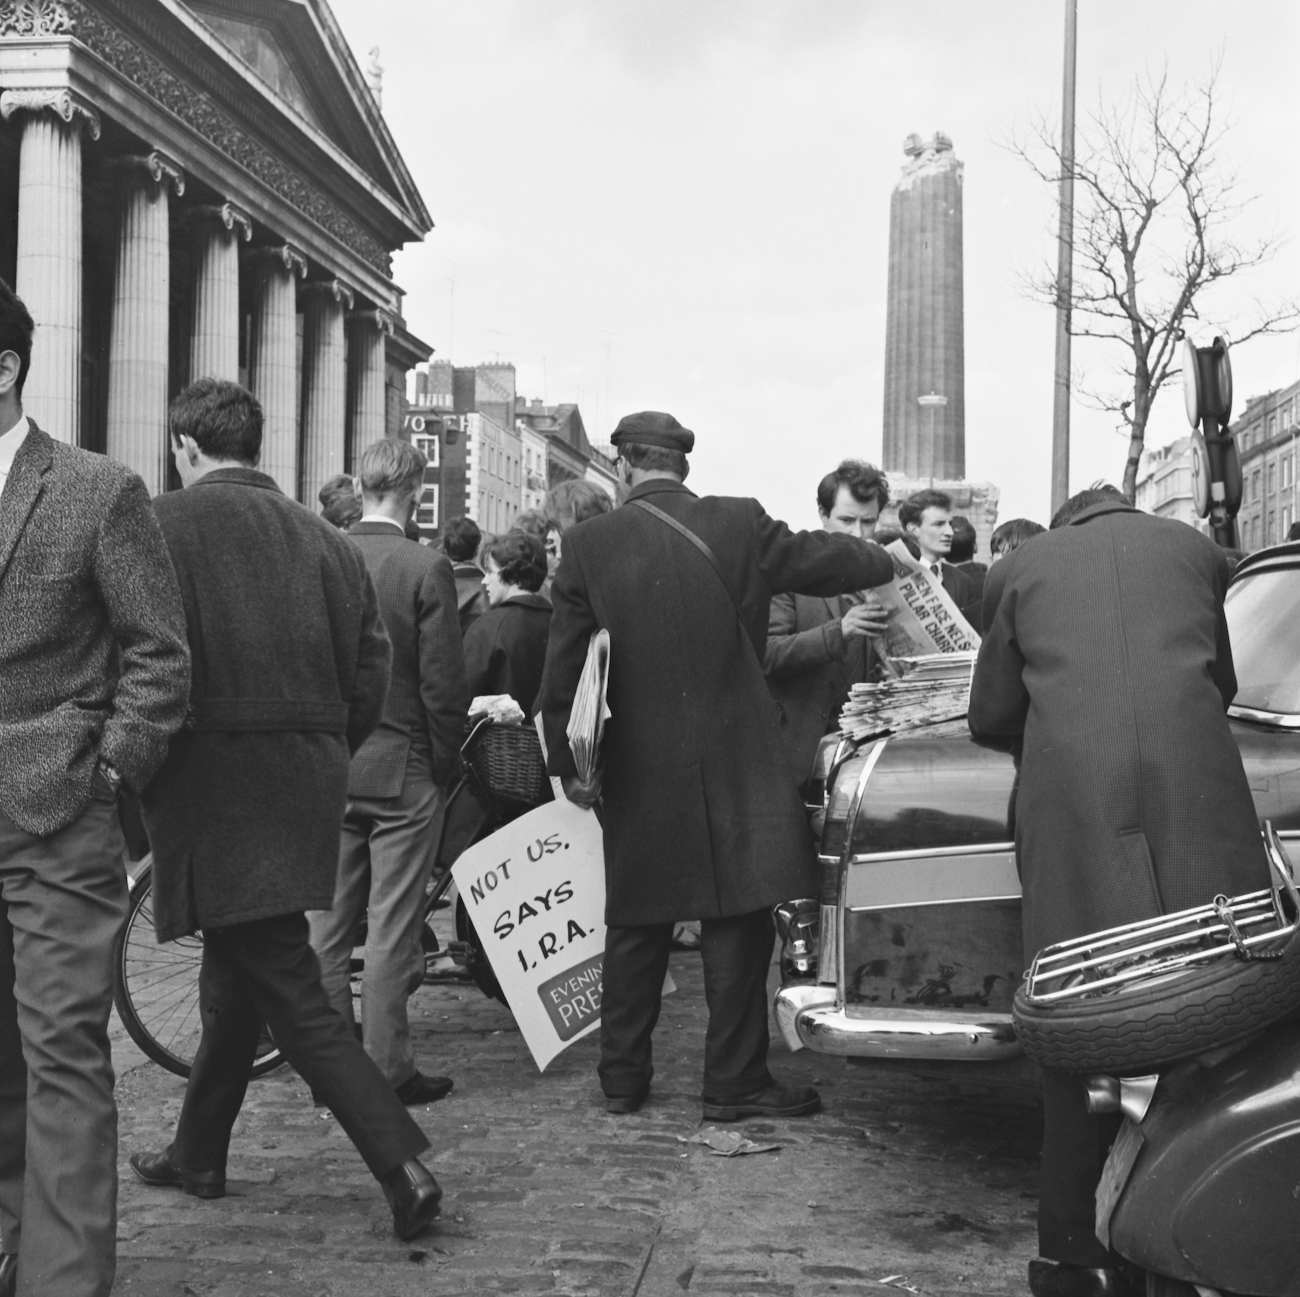 Ireland 1960s, An Evening Press newspaper seller does a brisk trade on O'Connell Street, Dublin on the day after Nelson's Pillar was blown up. Photographer: Elinor Wiltshire Date: Wednesday, 9 March 1966